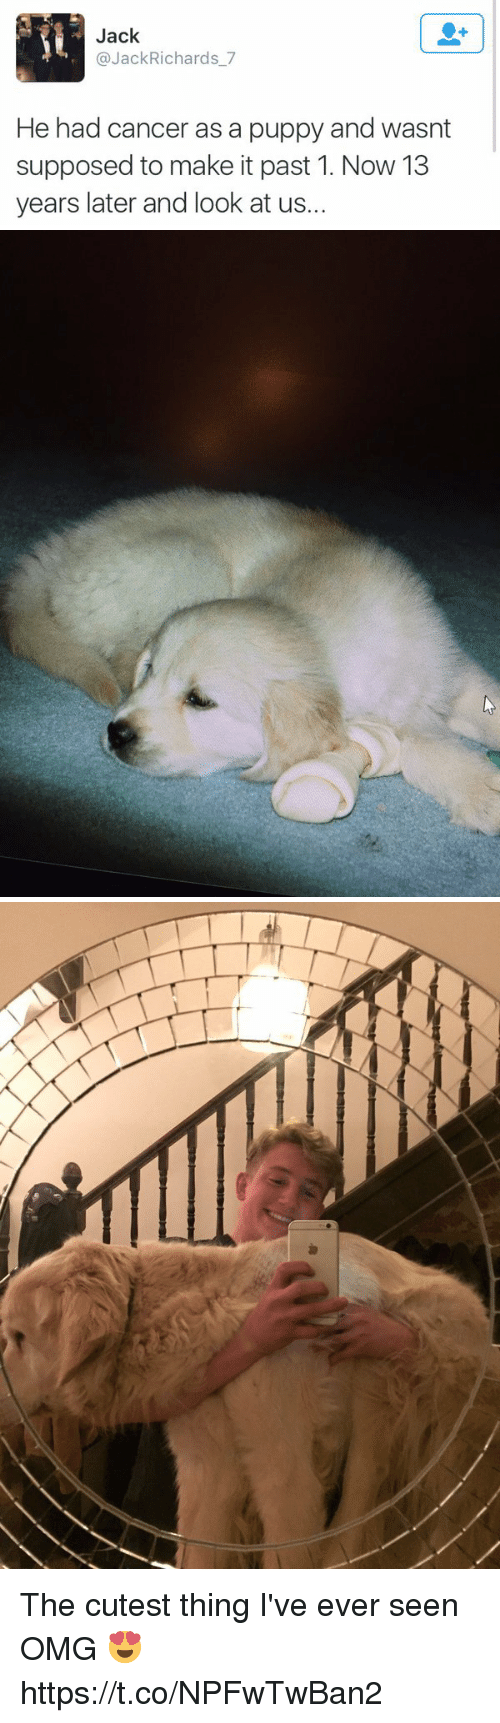 Seens: Jack  @JackRichards_7  He had cancer as a puppy and wasnt  supposed to make it past 1. Now 13  years later and look at us. The cutest thing I've ever seen OMG 😍 https://t.co/NPFwTwBan2